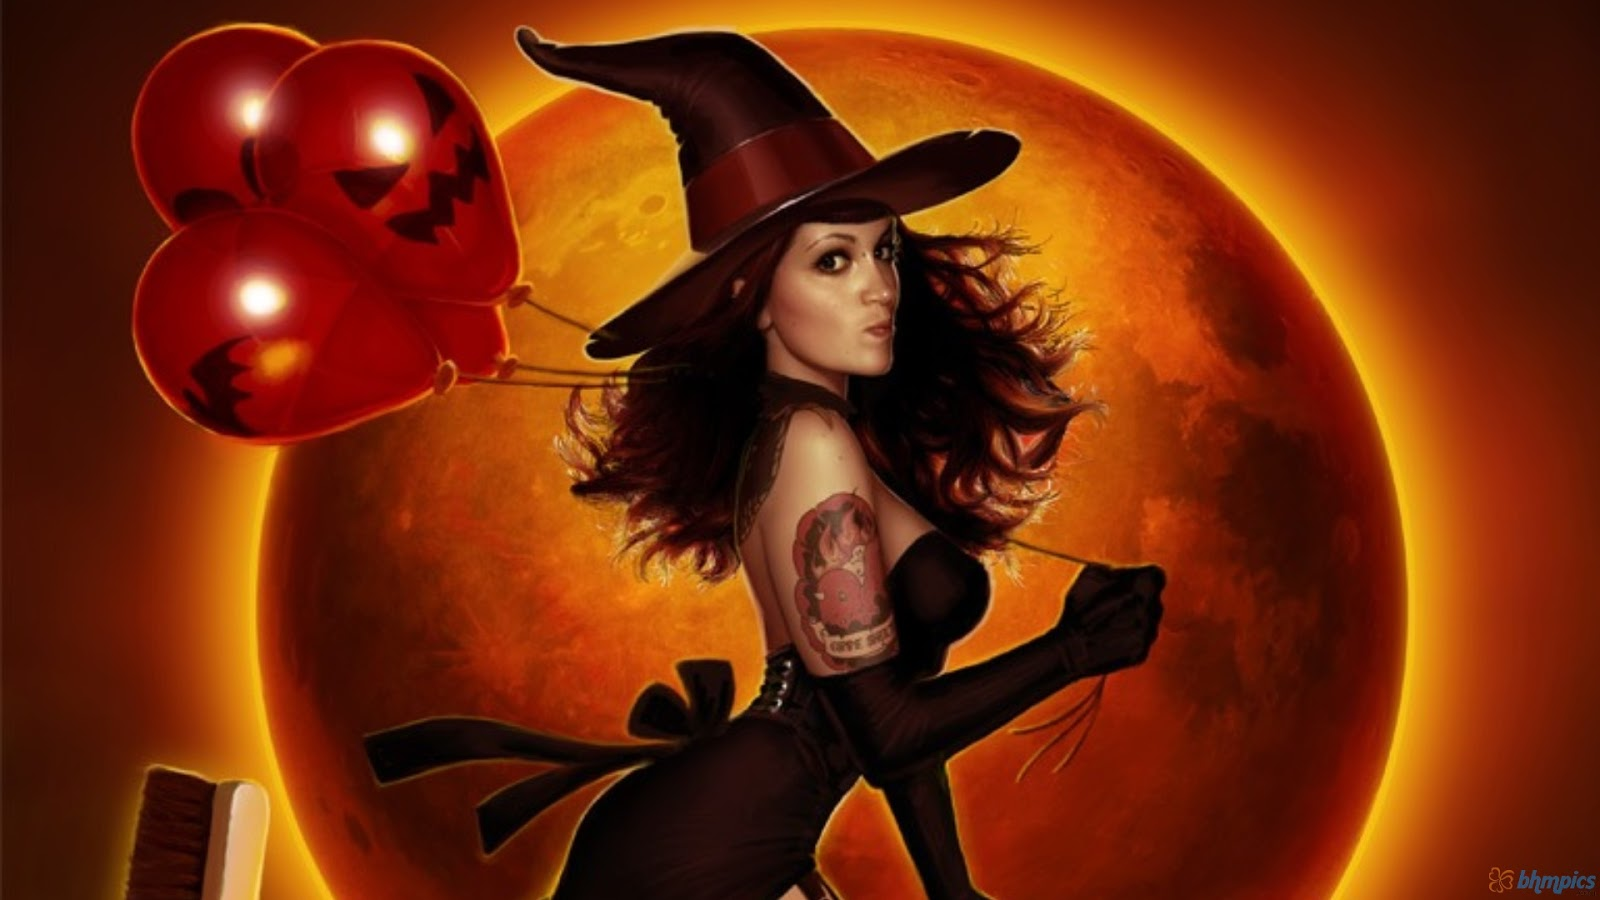 hot halloween wallpapers - photo #2